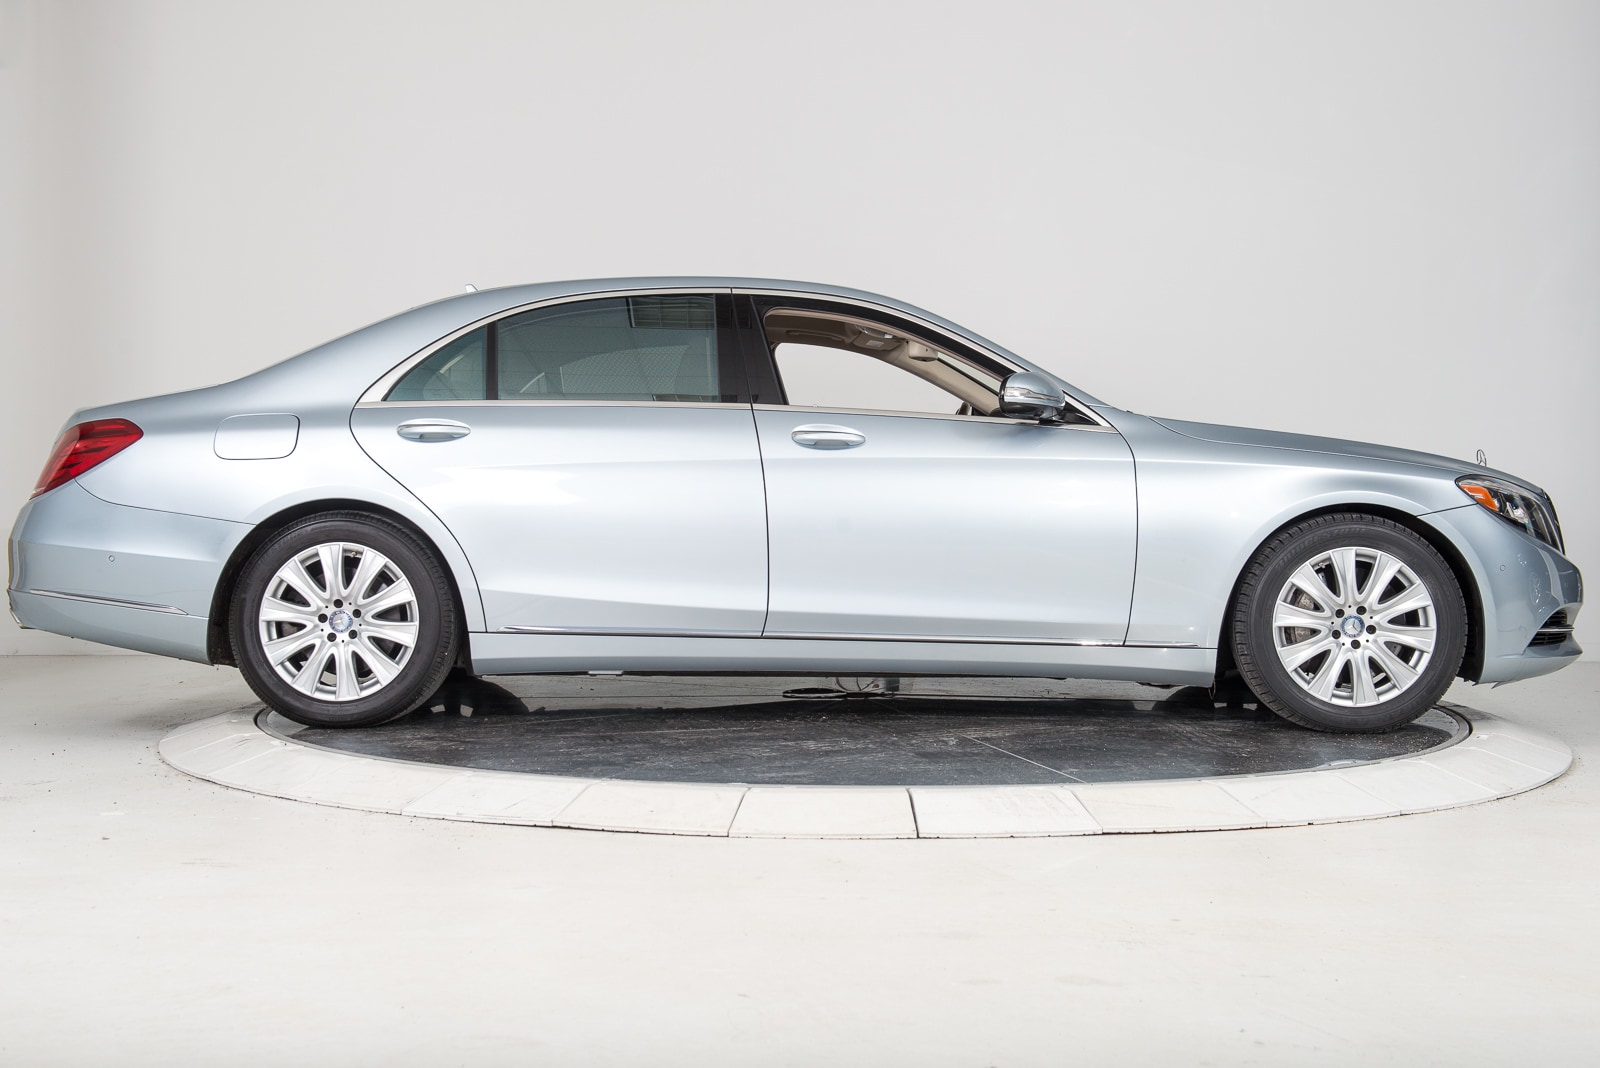 Used 2015 mercedes benz s550 4matic for sale fort for Used mercedes benz for sale in florida